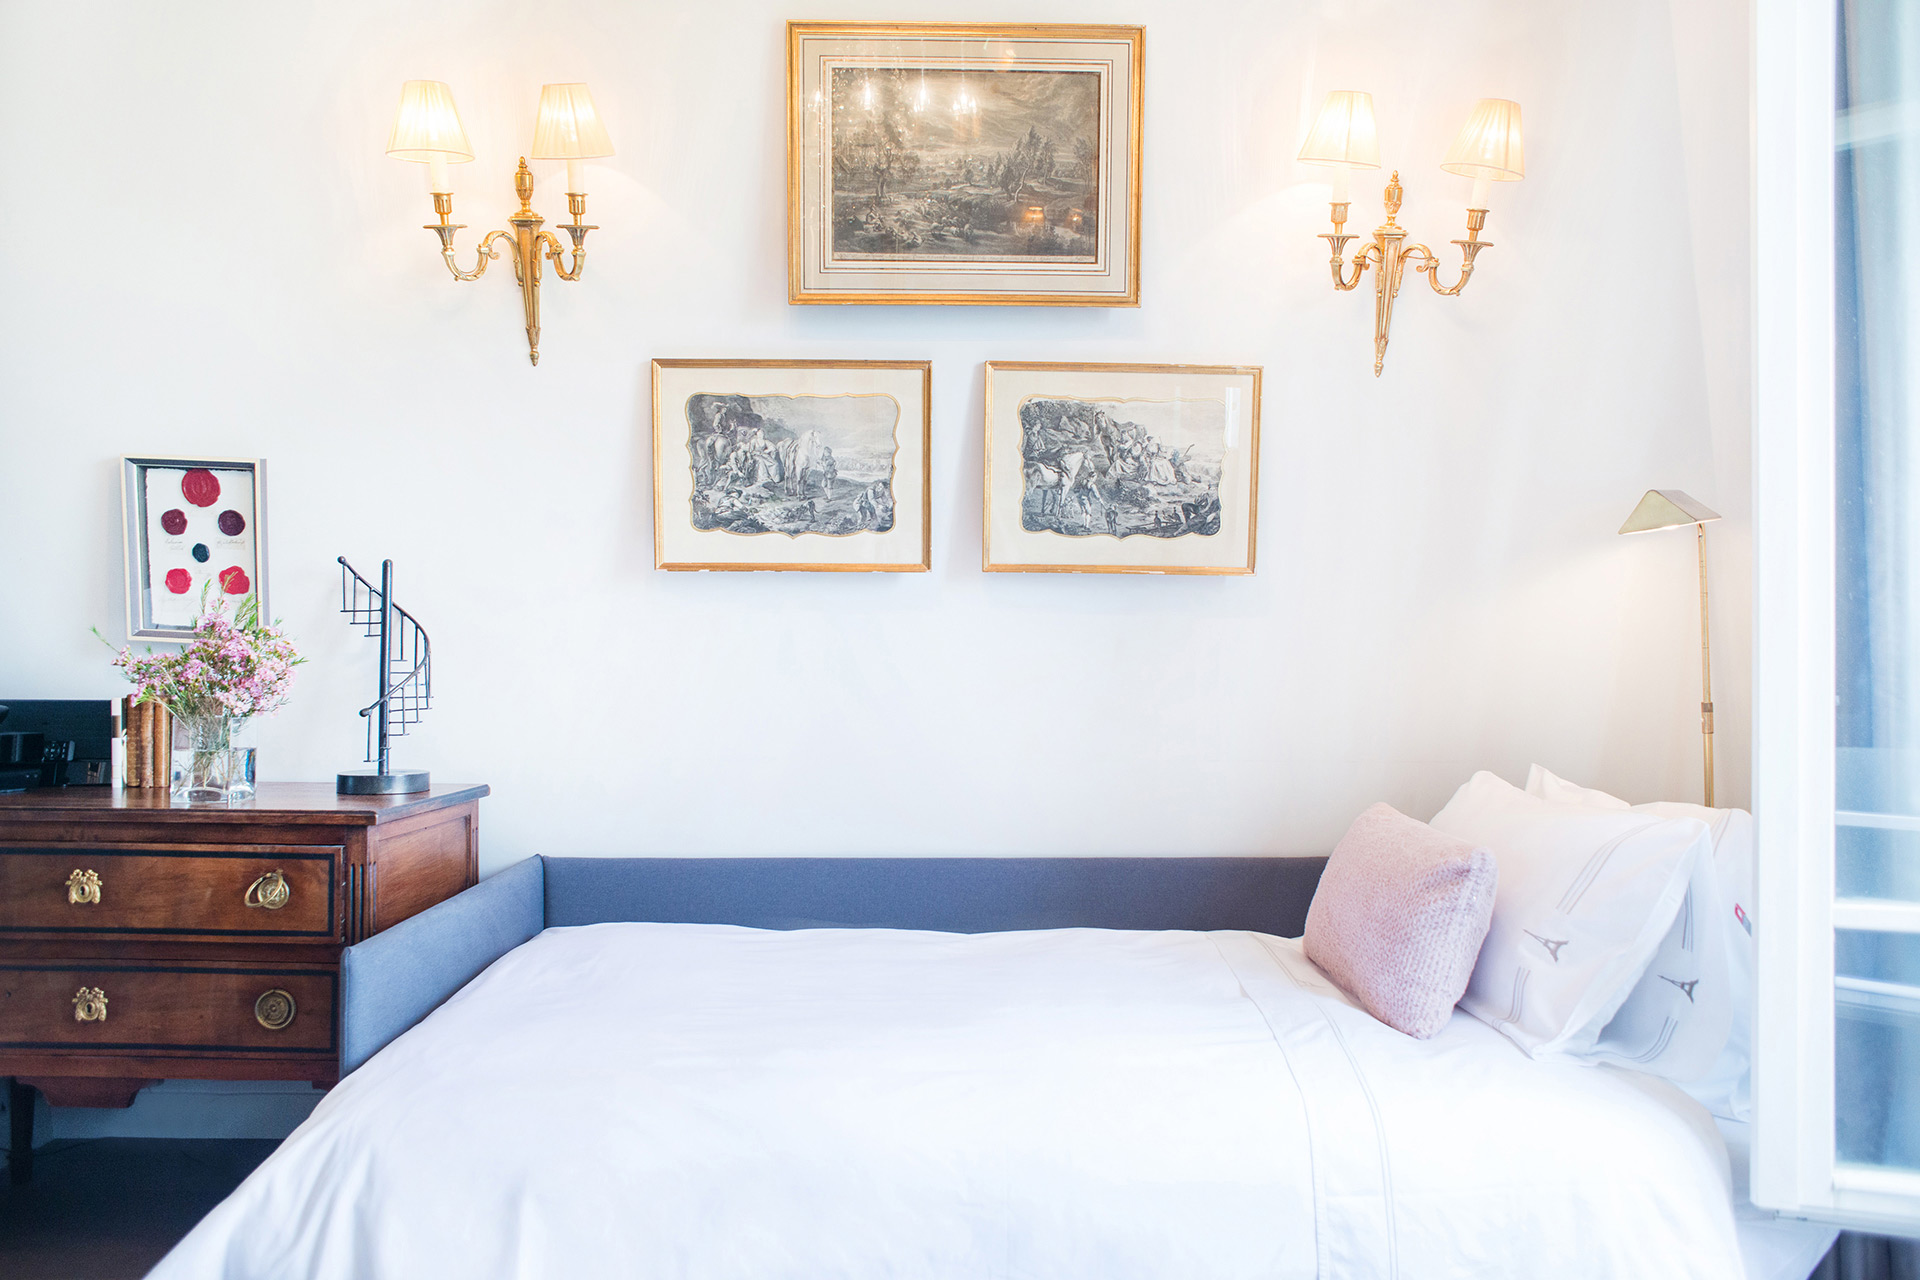 Couch converts to a comfortable bed with a memory foam mattress in the Cremant vacation rental